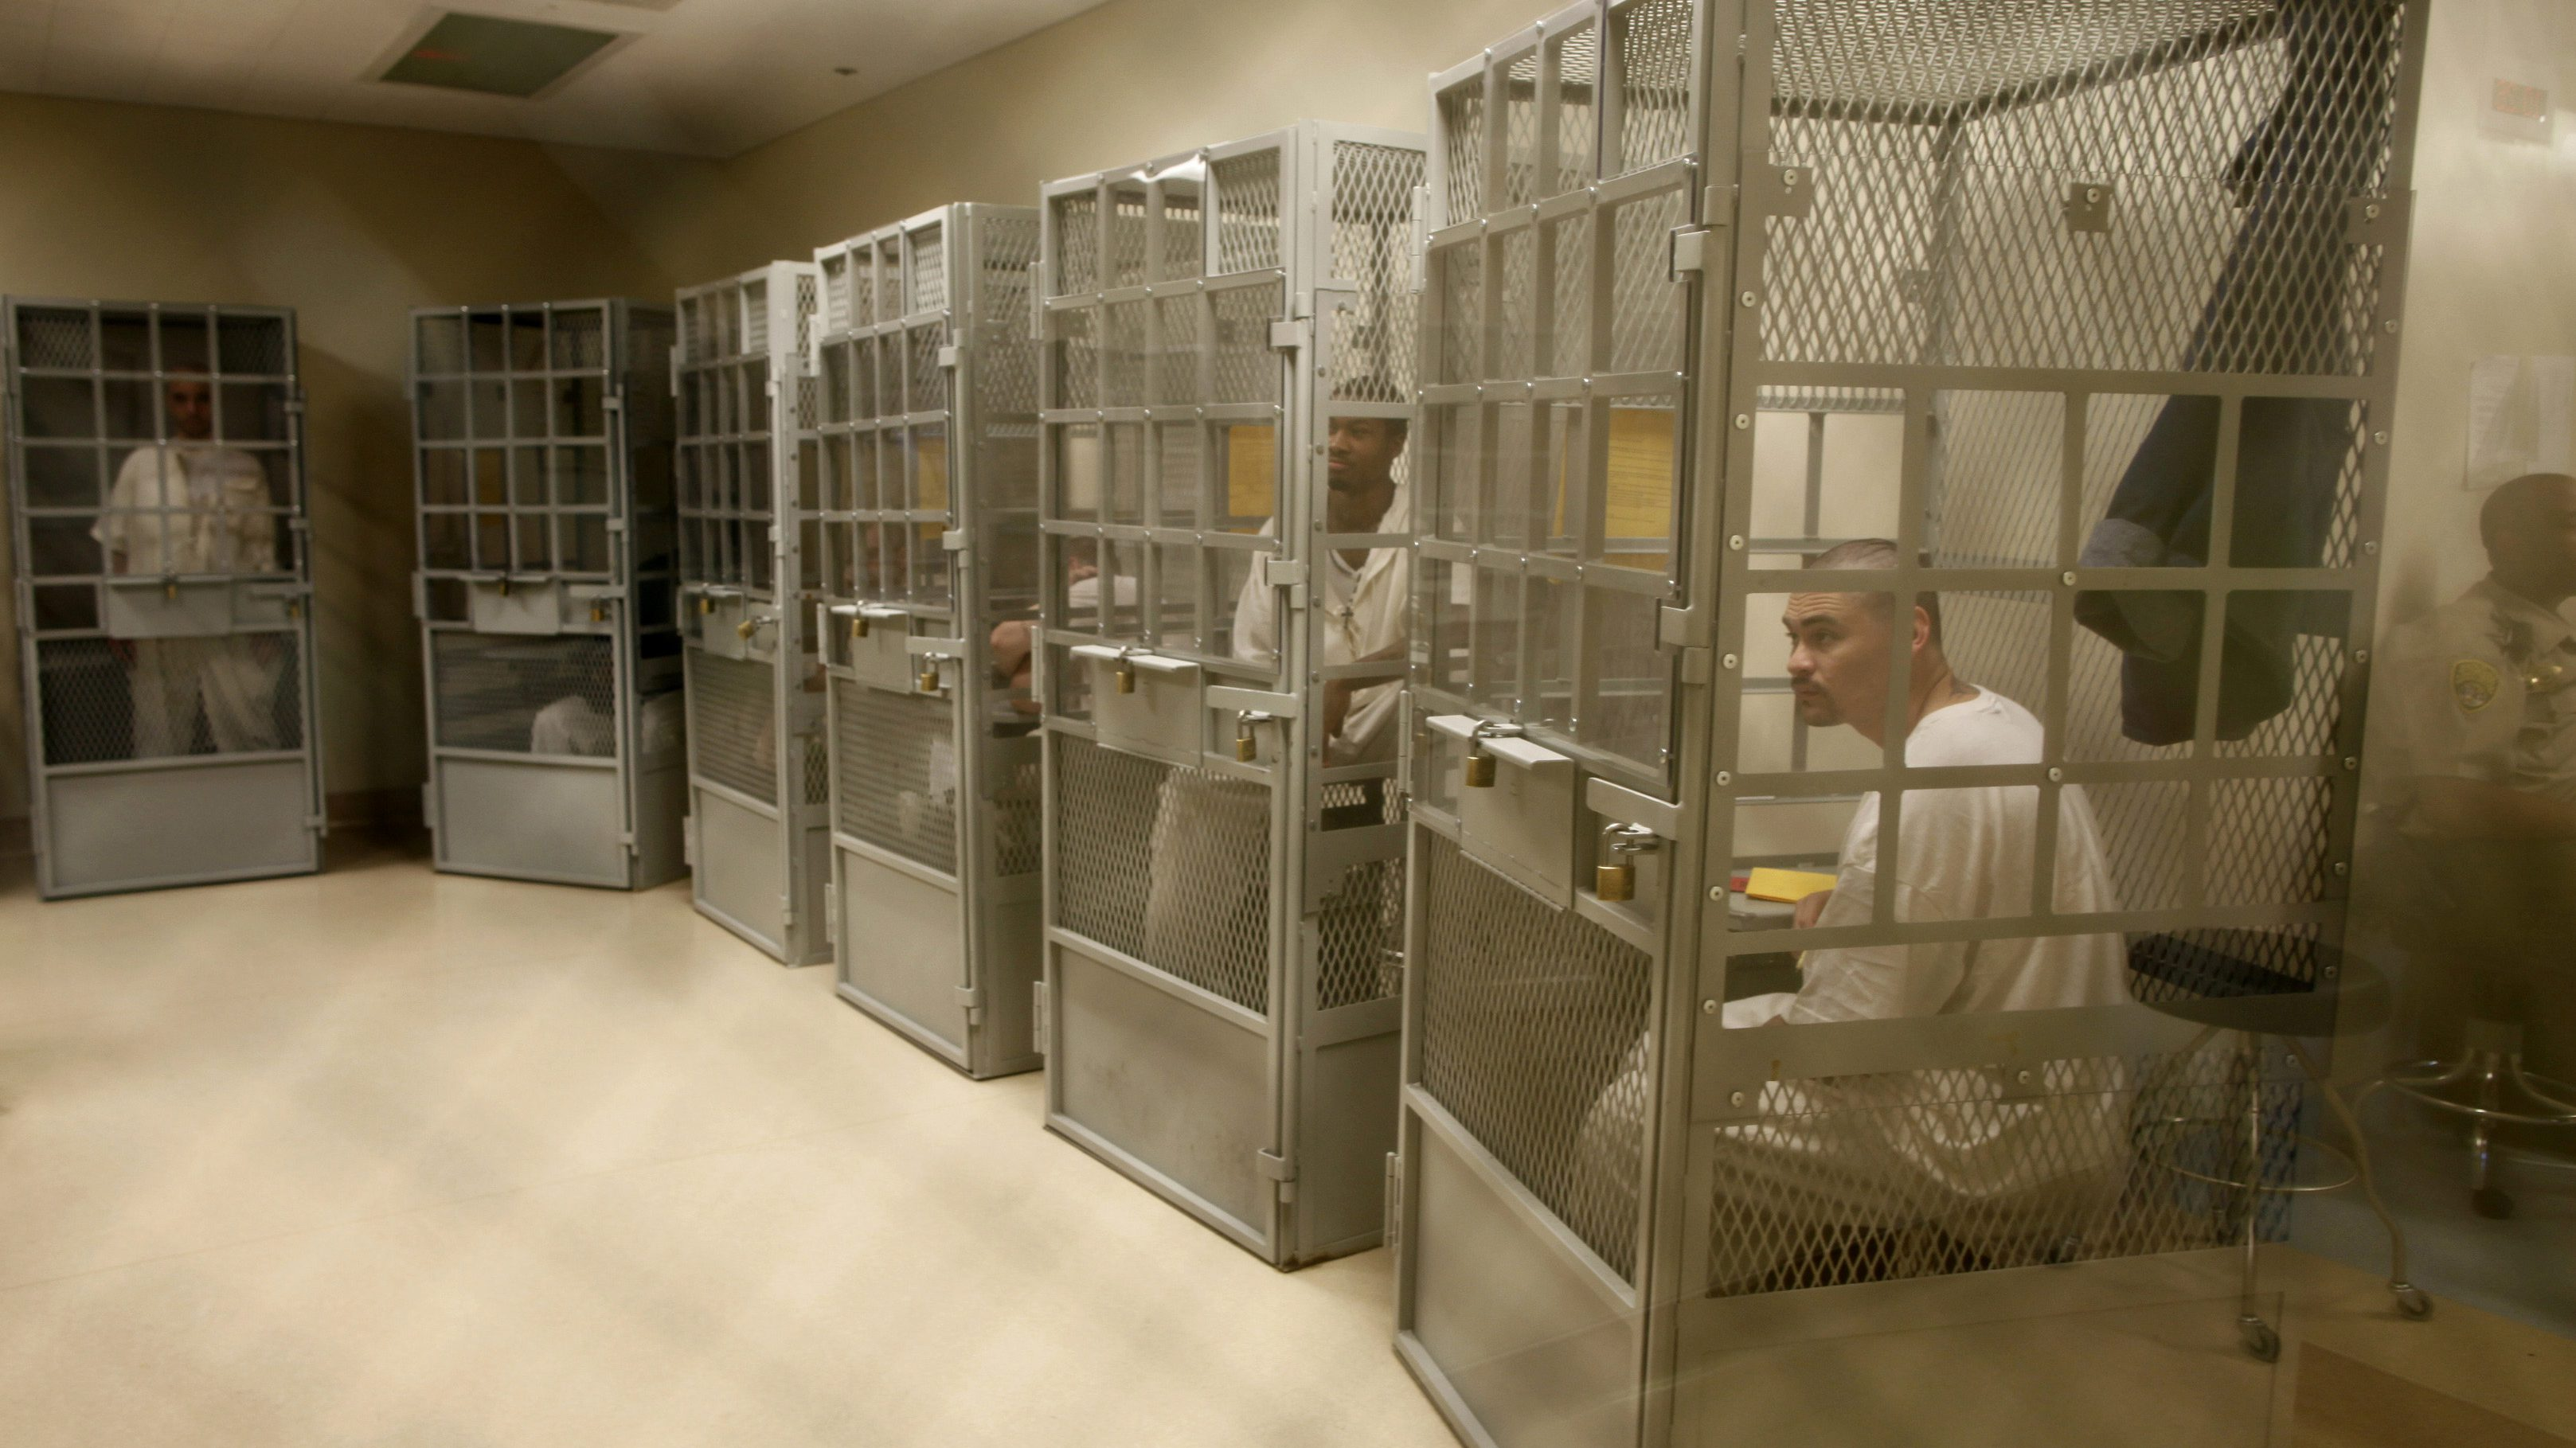 Administrative segregation prisoners take part in a group therapy session at San Quentin state prison